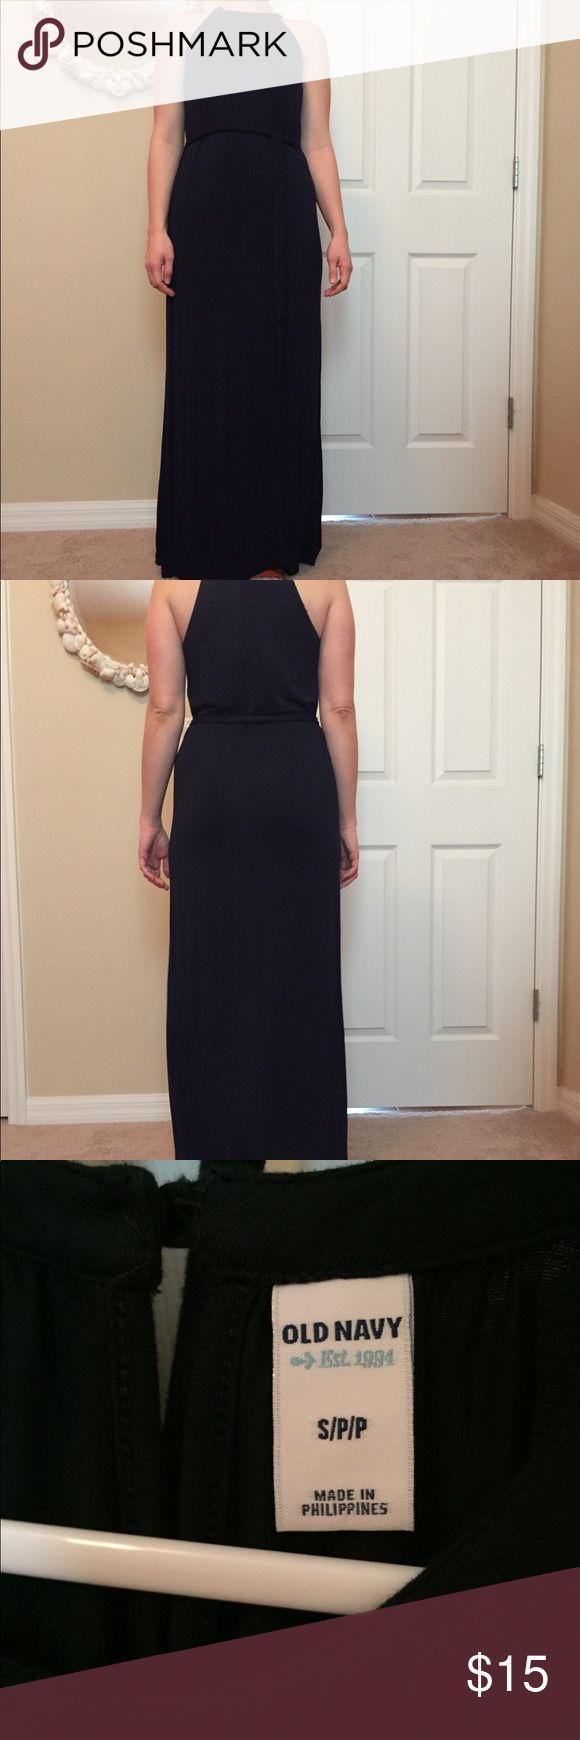 Old Navy Maxi Dress Old Navy Maxi dress. Navy blue and never worn. Perfect for the beach . Has a removable tie belt. I must have removed the fabric description tag, but this is stretchy jersey material. Non-smoking and pet free home. Old Navy Dresses Maxi